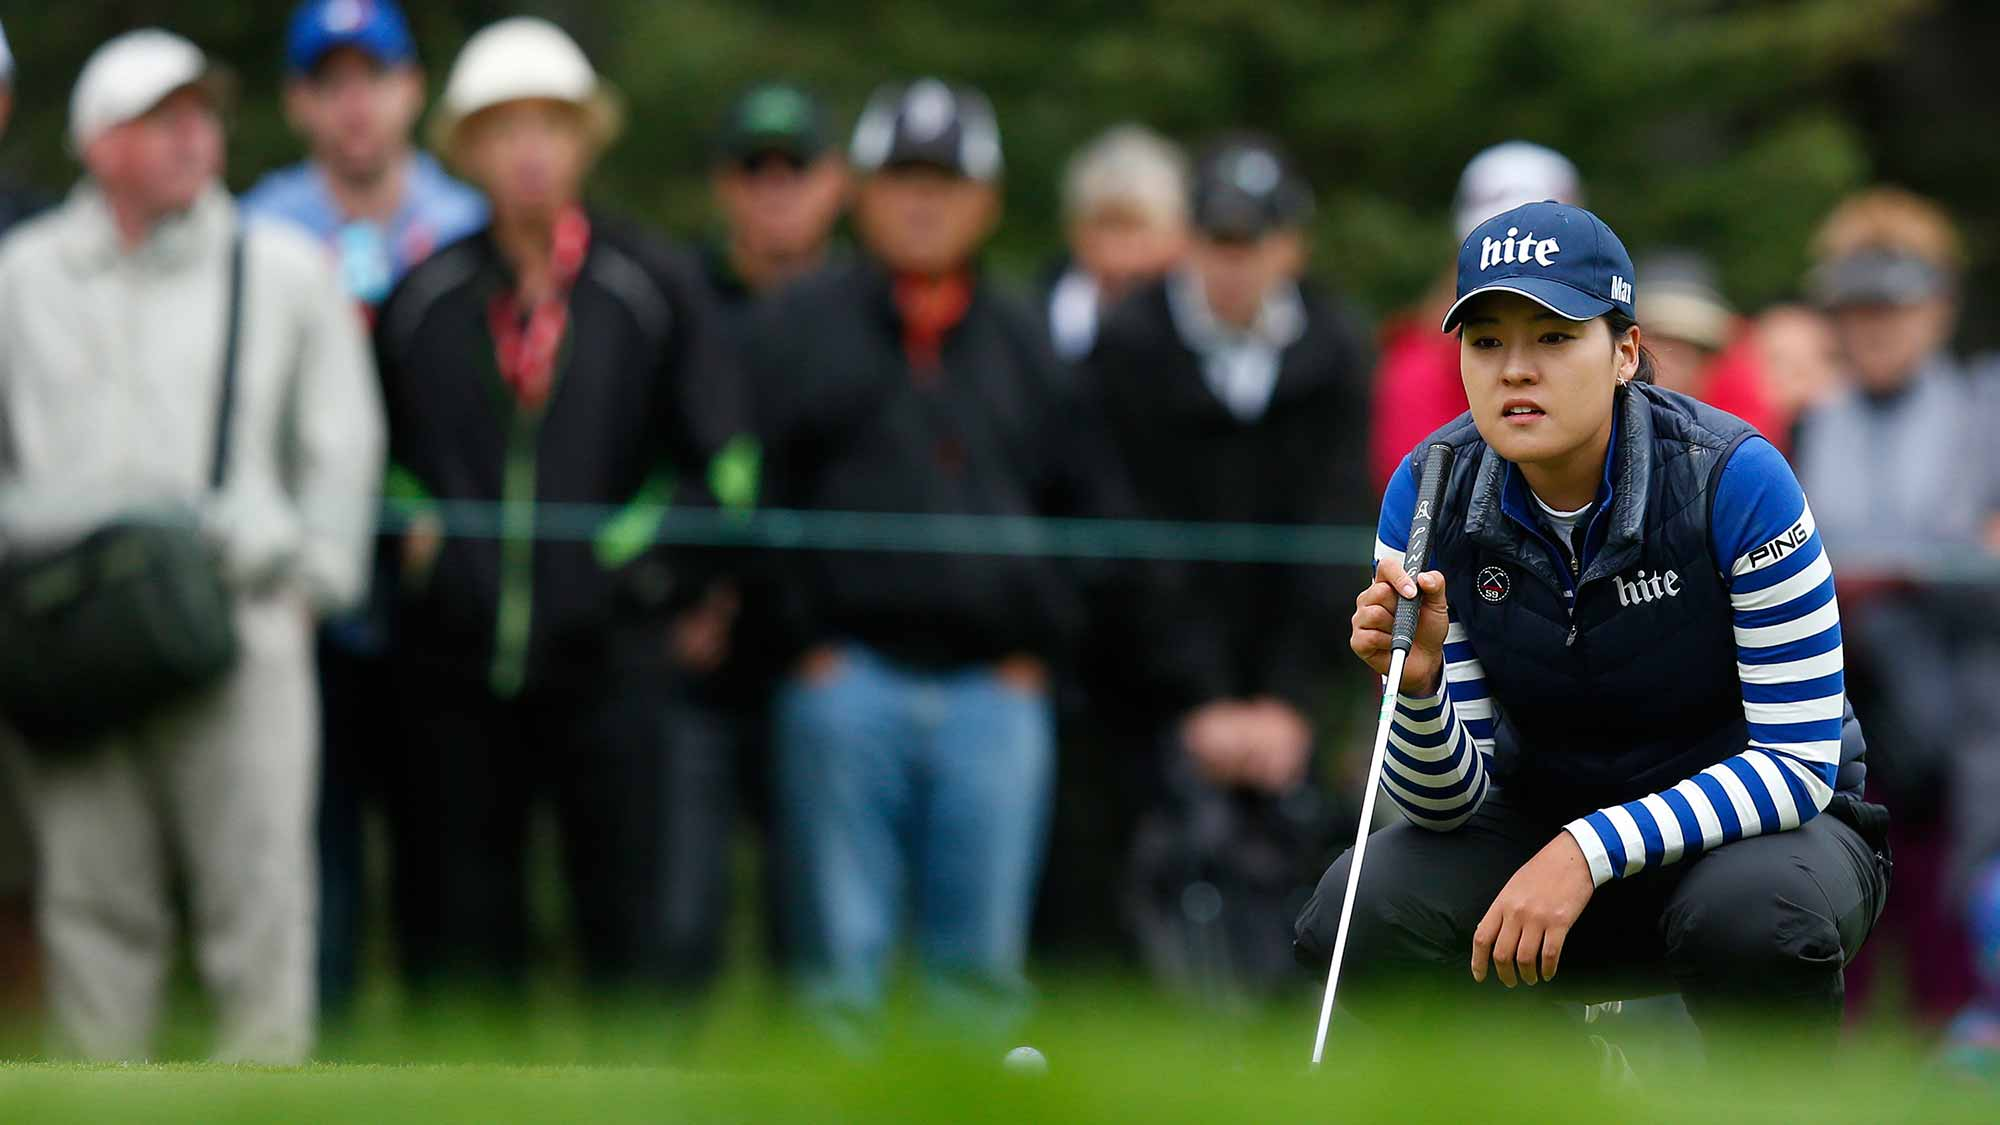 In Gee Chun of South Korea lines up her putt on the first hole during the final round of the Canadian Pacific Women's Open at Priddis Greens Golf and Country Club